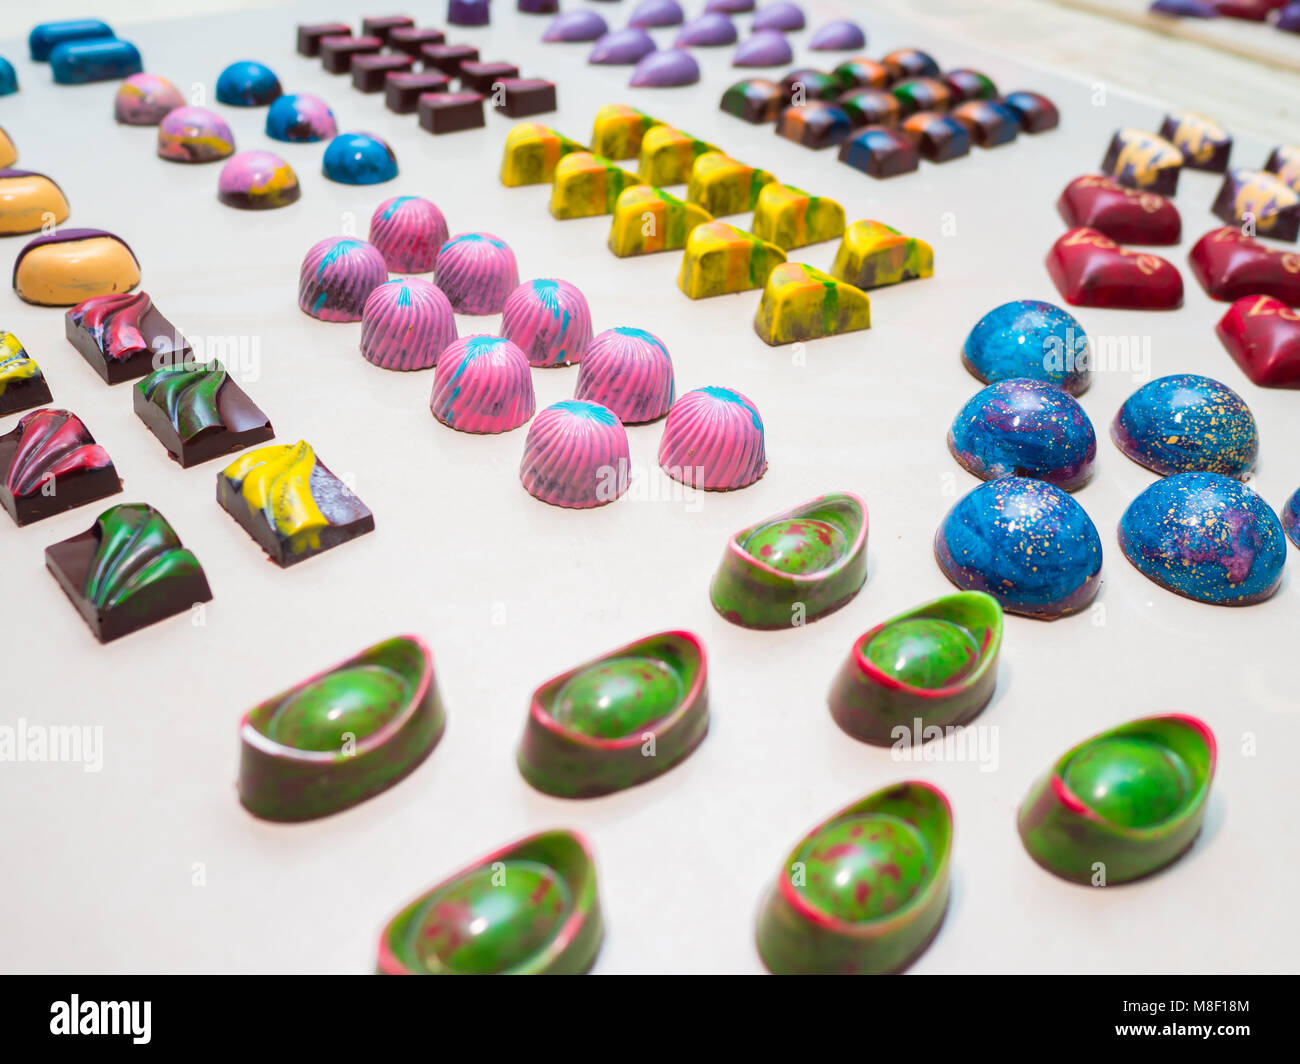 Assortment of luxury handmade chocolate candy collection isolated on white background. Set of colorful chocolate - Stock Image